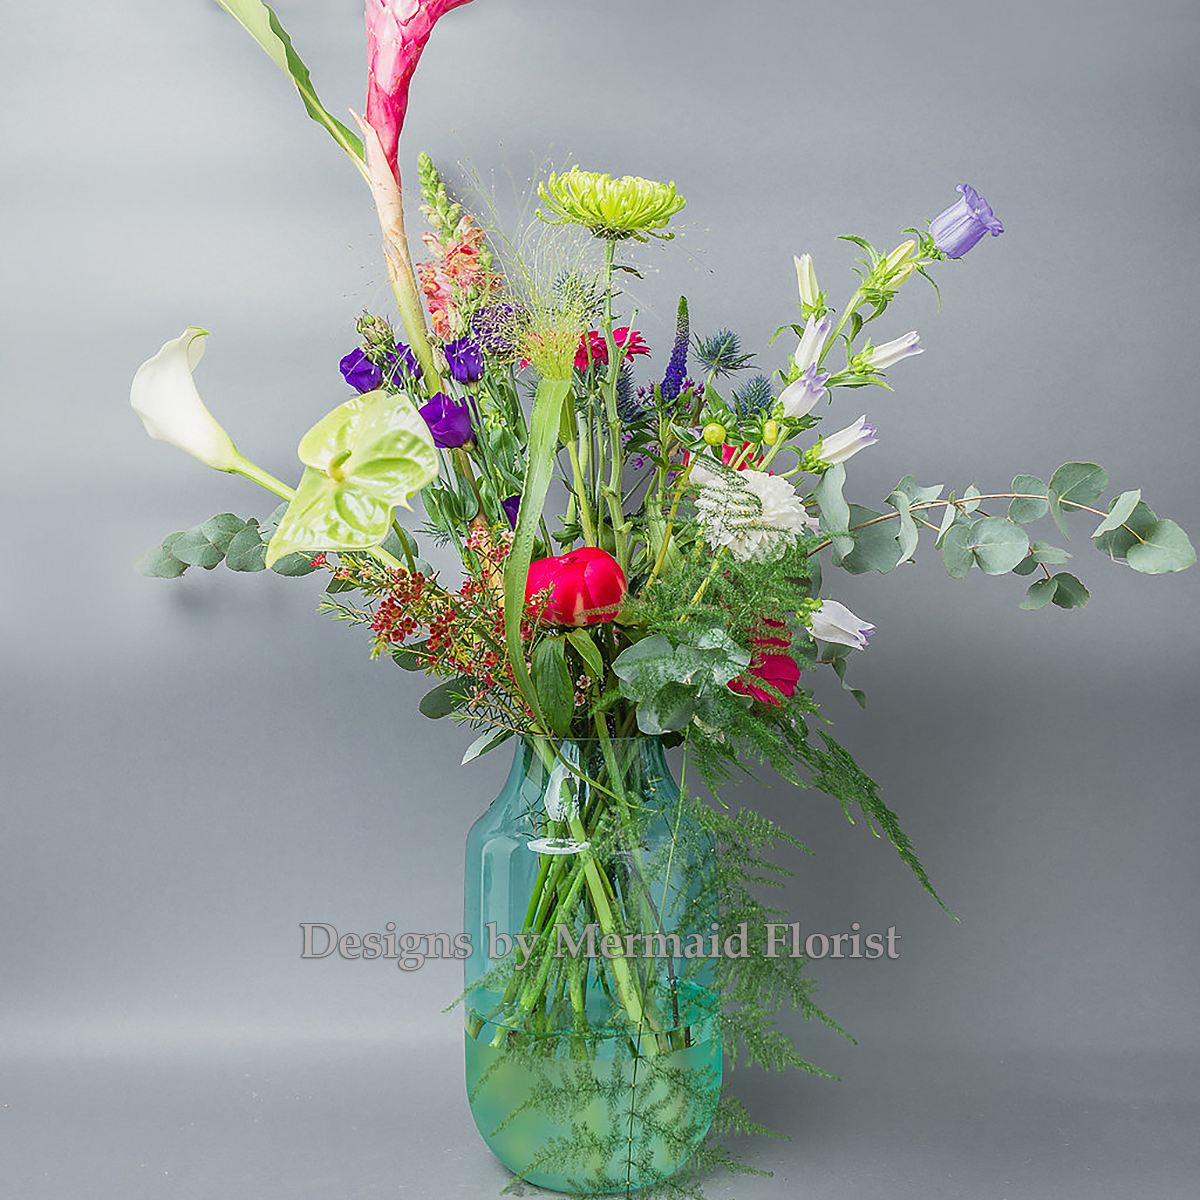 A Vase of Wild Flowers